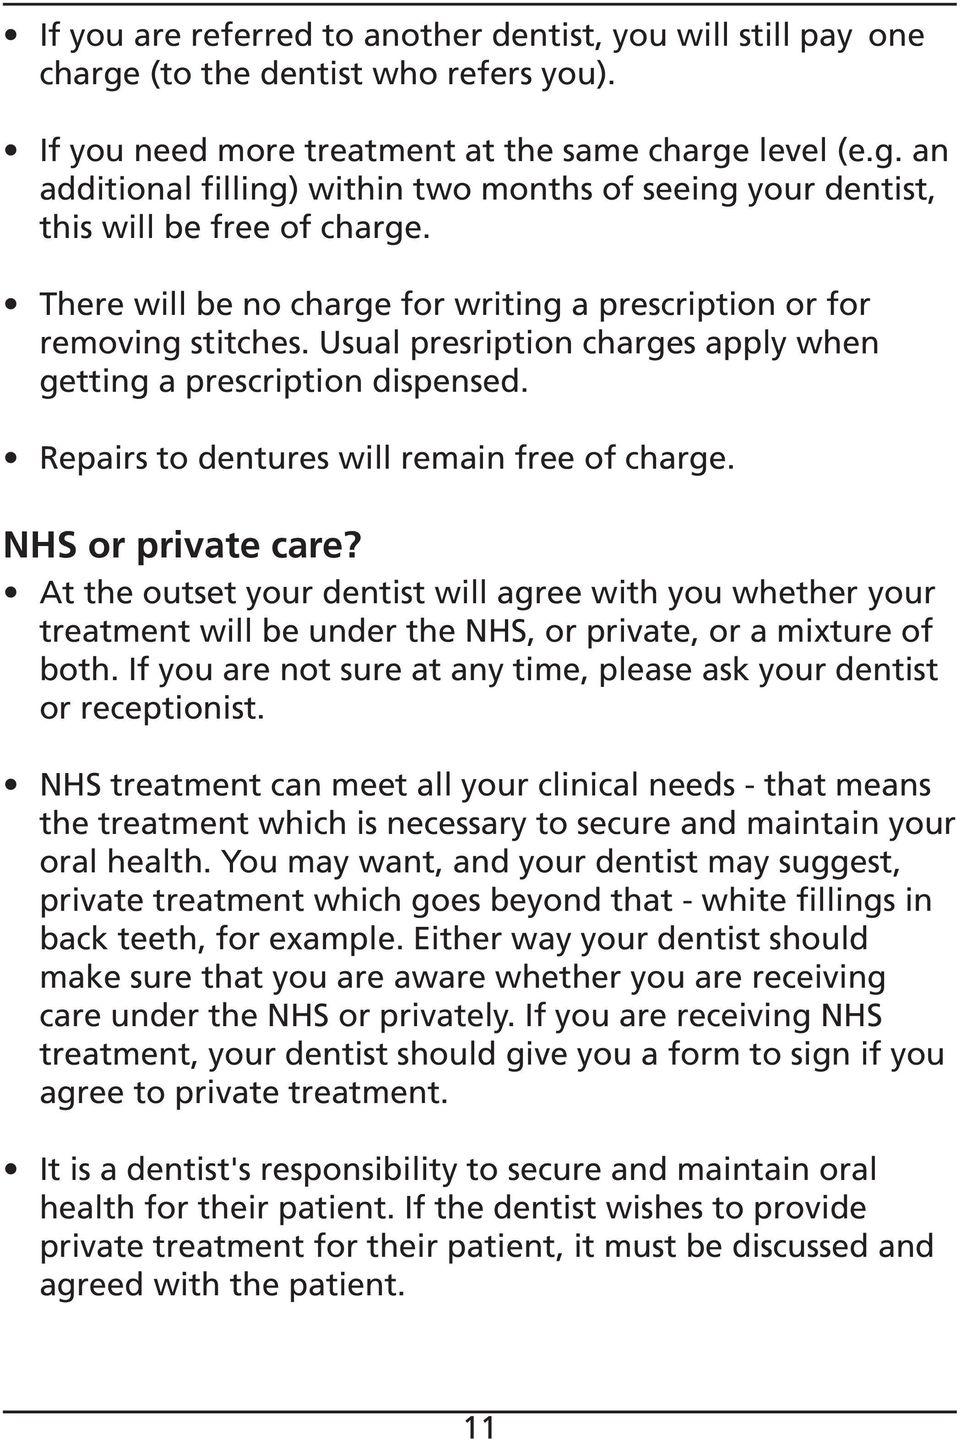 NHS or private care? At the outset your dentist will agree with you whether your treatment will be under the NHS, or private, or a mixture of both.